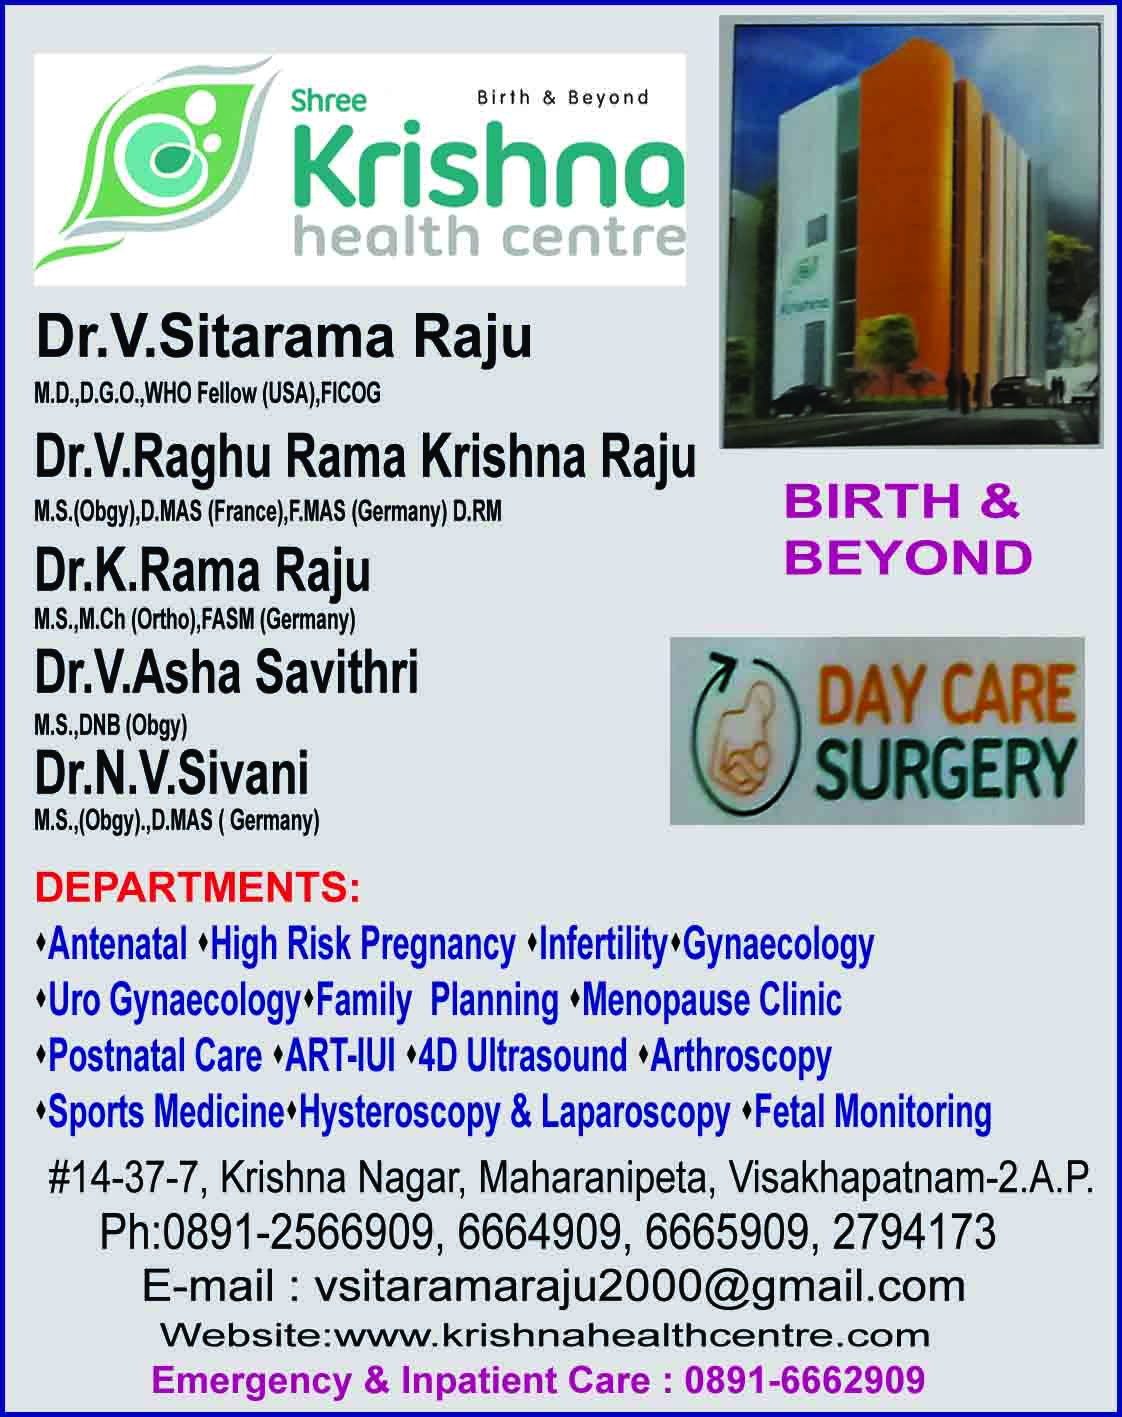 SHREE KRISHNA HEALTH CENTRE